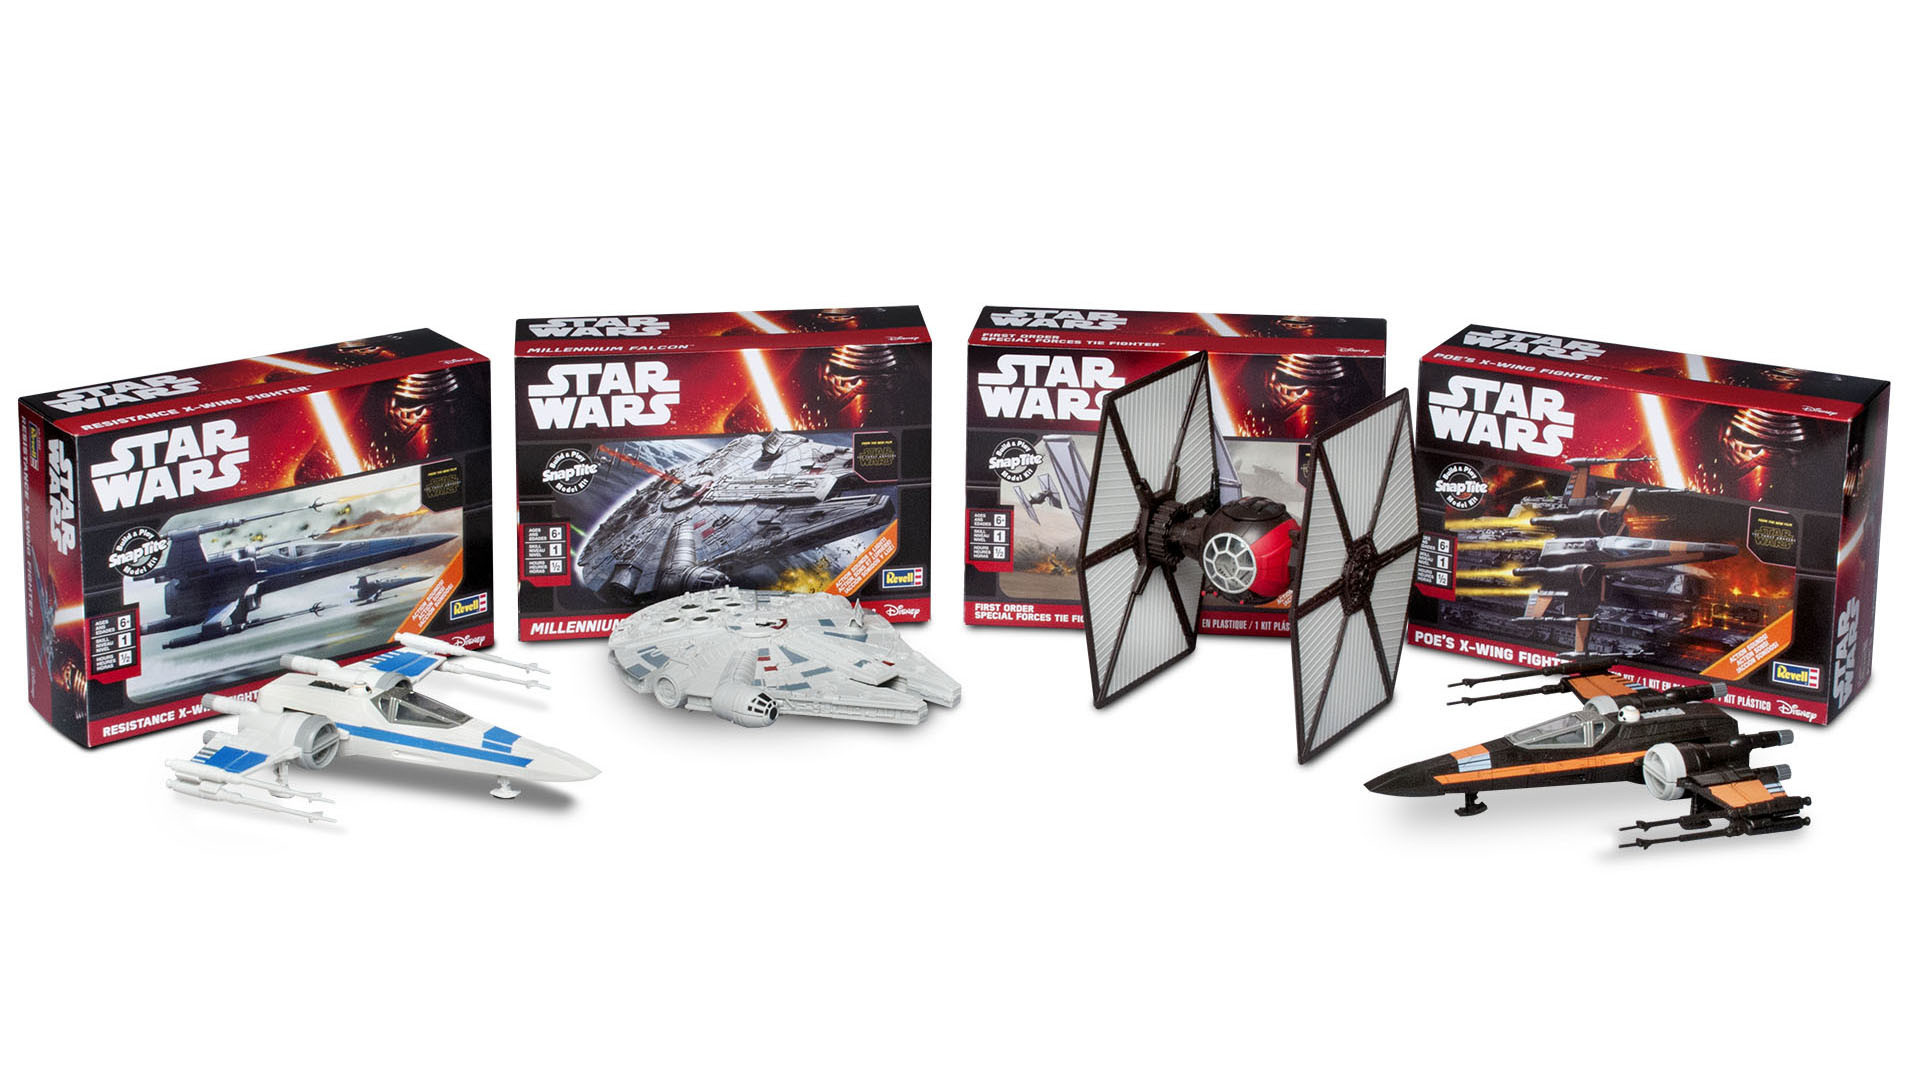 Force Friday Disney unveils Star Wars toys amid massive